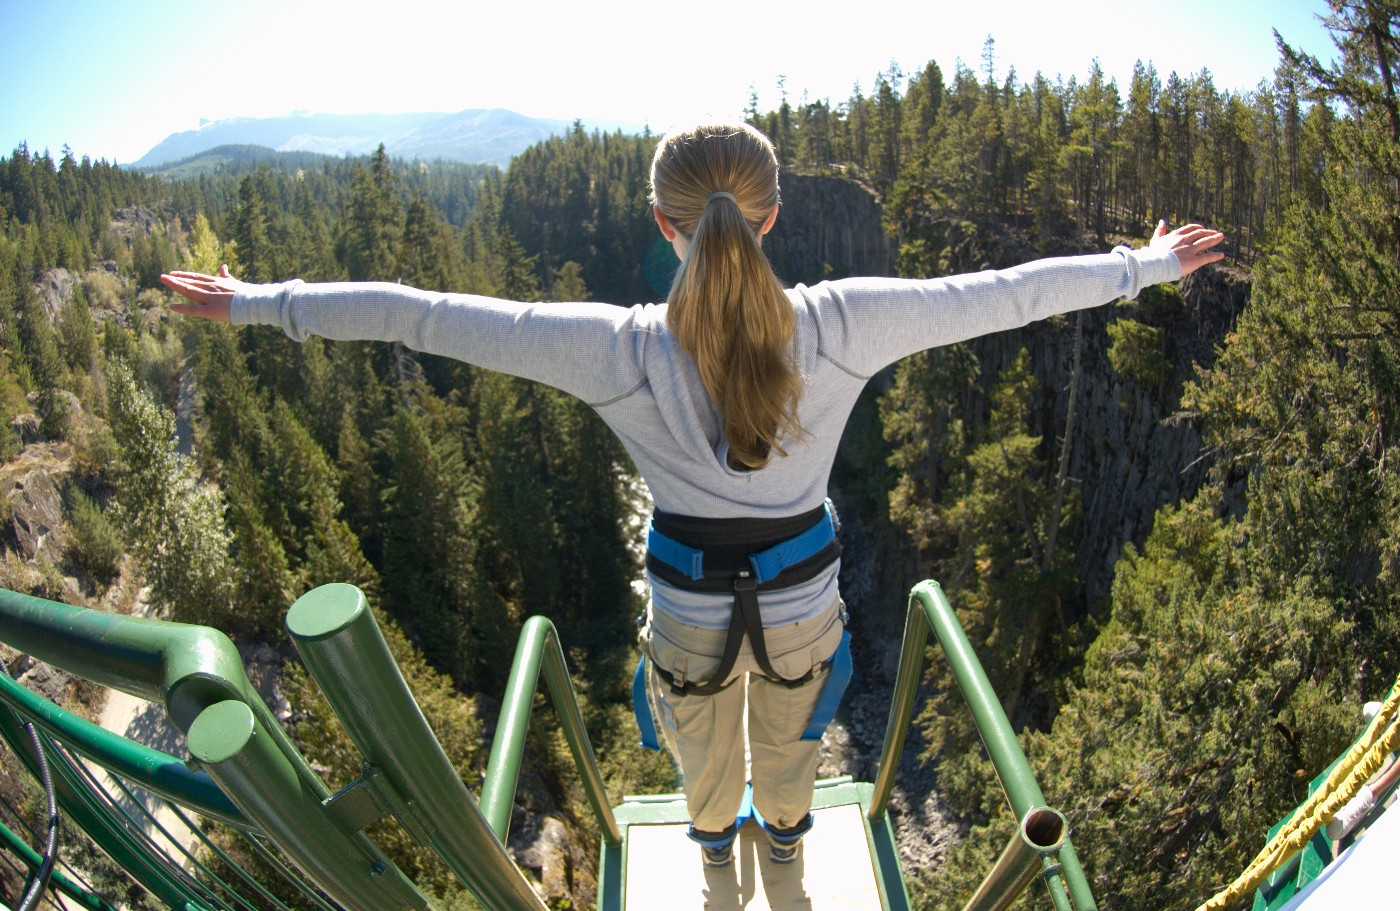 https://tickertapecdn.tdameritrade.com/assets/images/pages/md/woman on edge of bungee platform: top-down approach to trading ideas